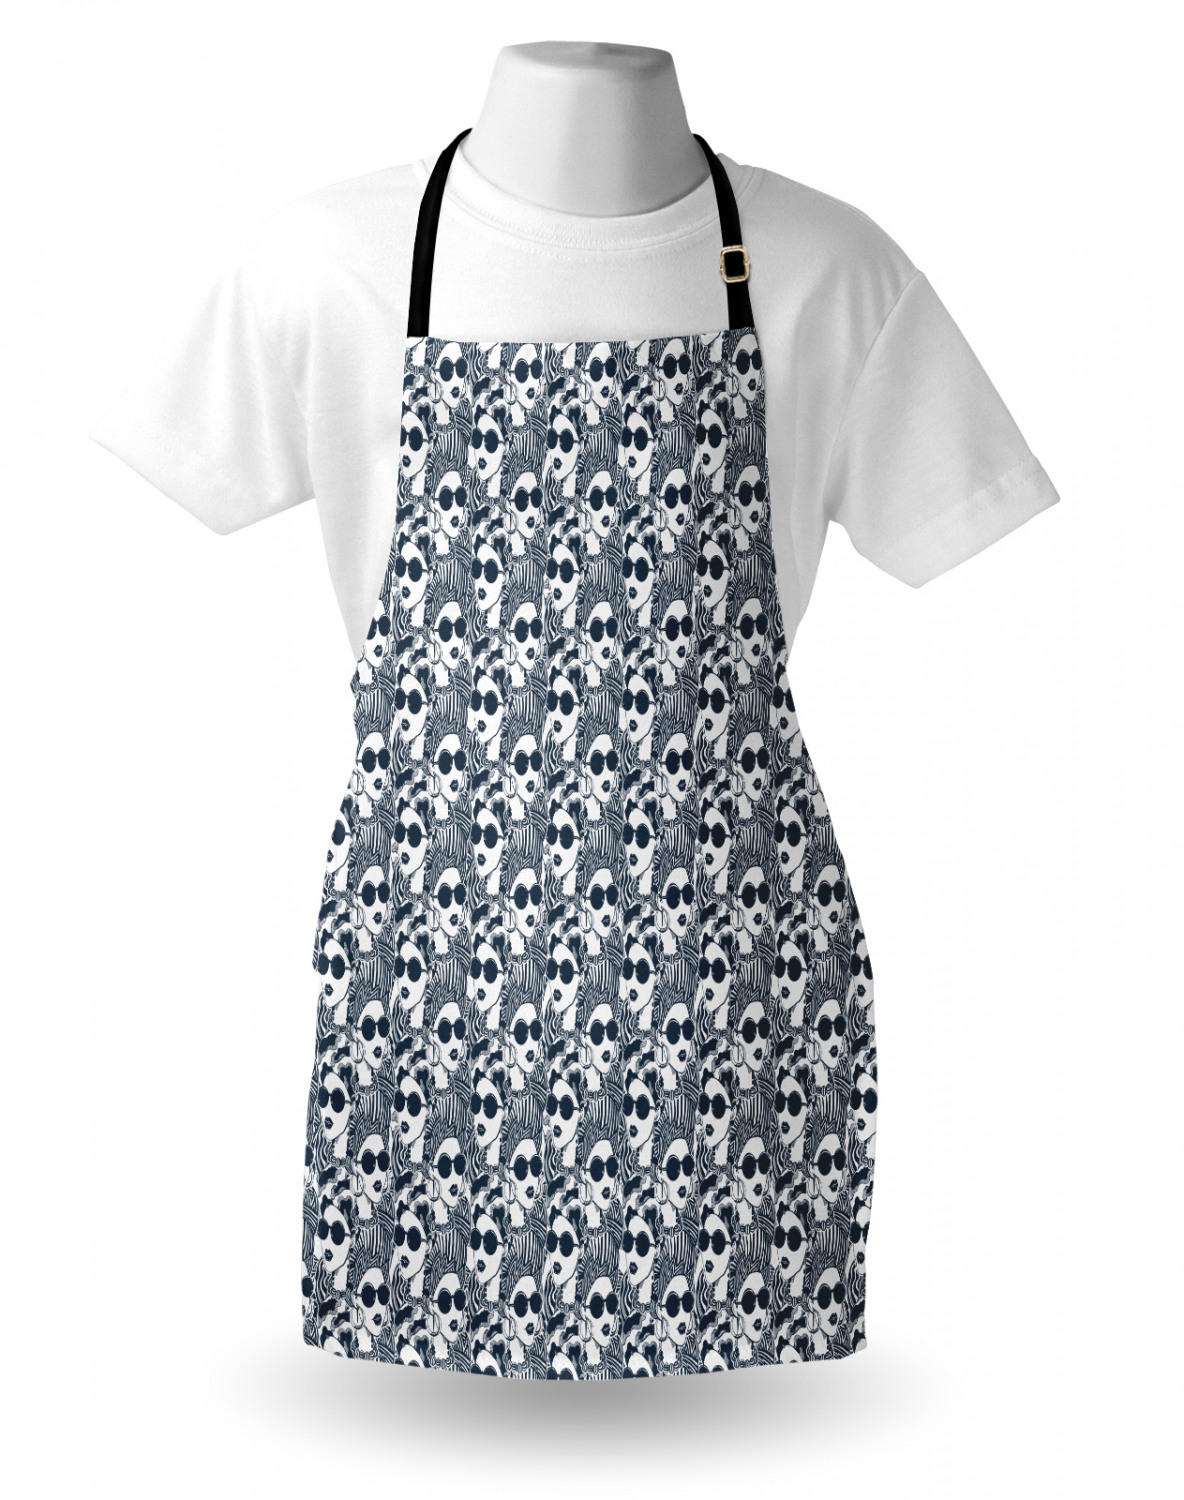 Details about  /Ambesonne Washable Apron with Adjustable Neck Strap for Garden Cooking